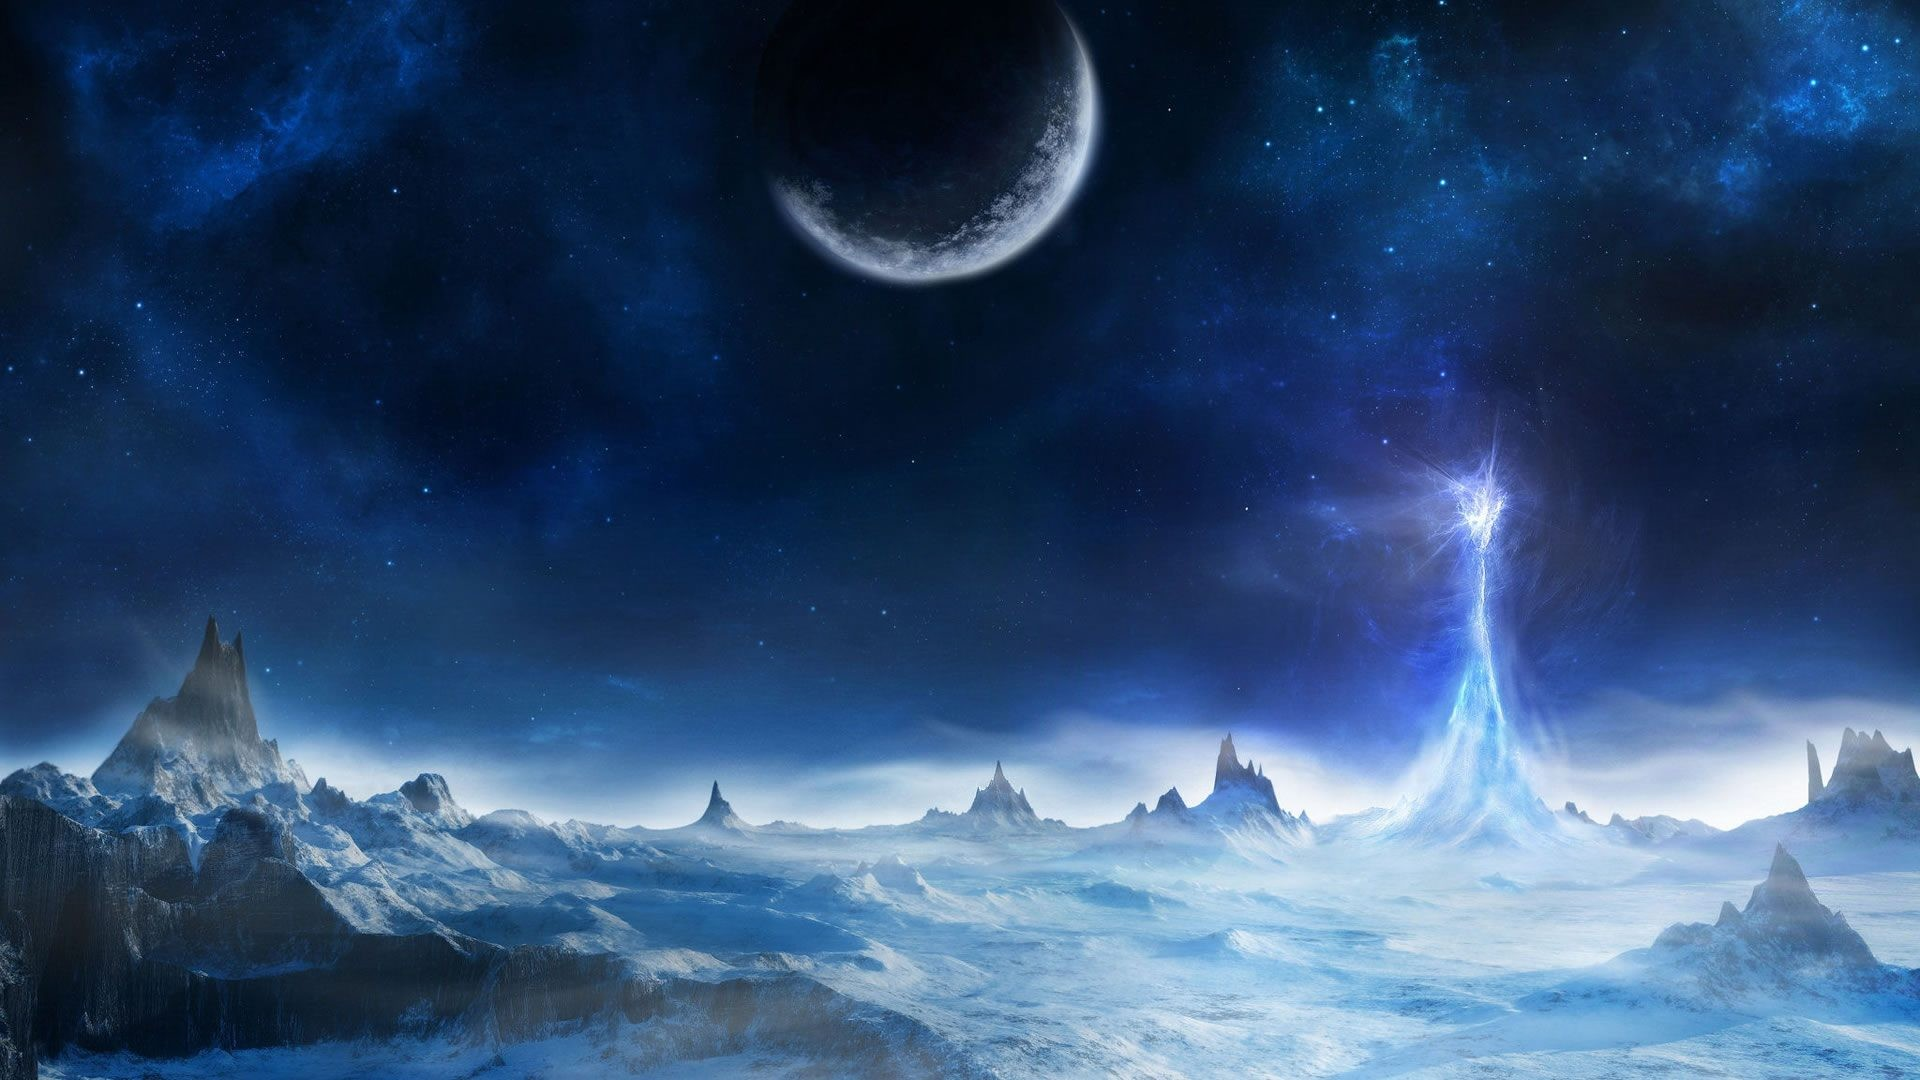 fantasy background ·① download free amazing high resolution